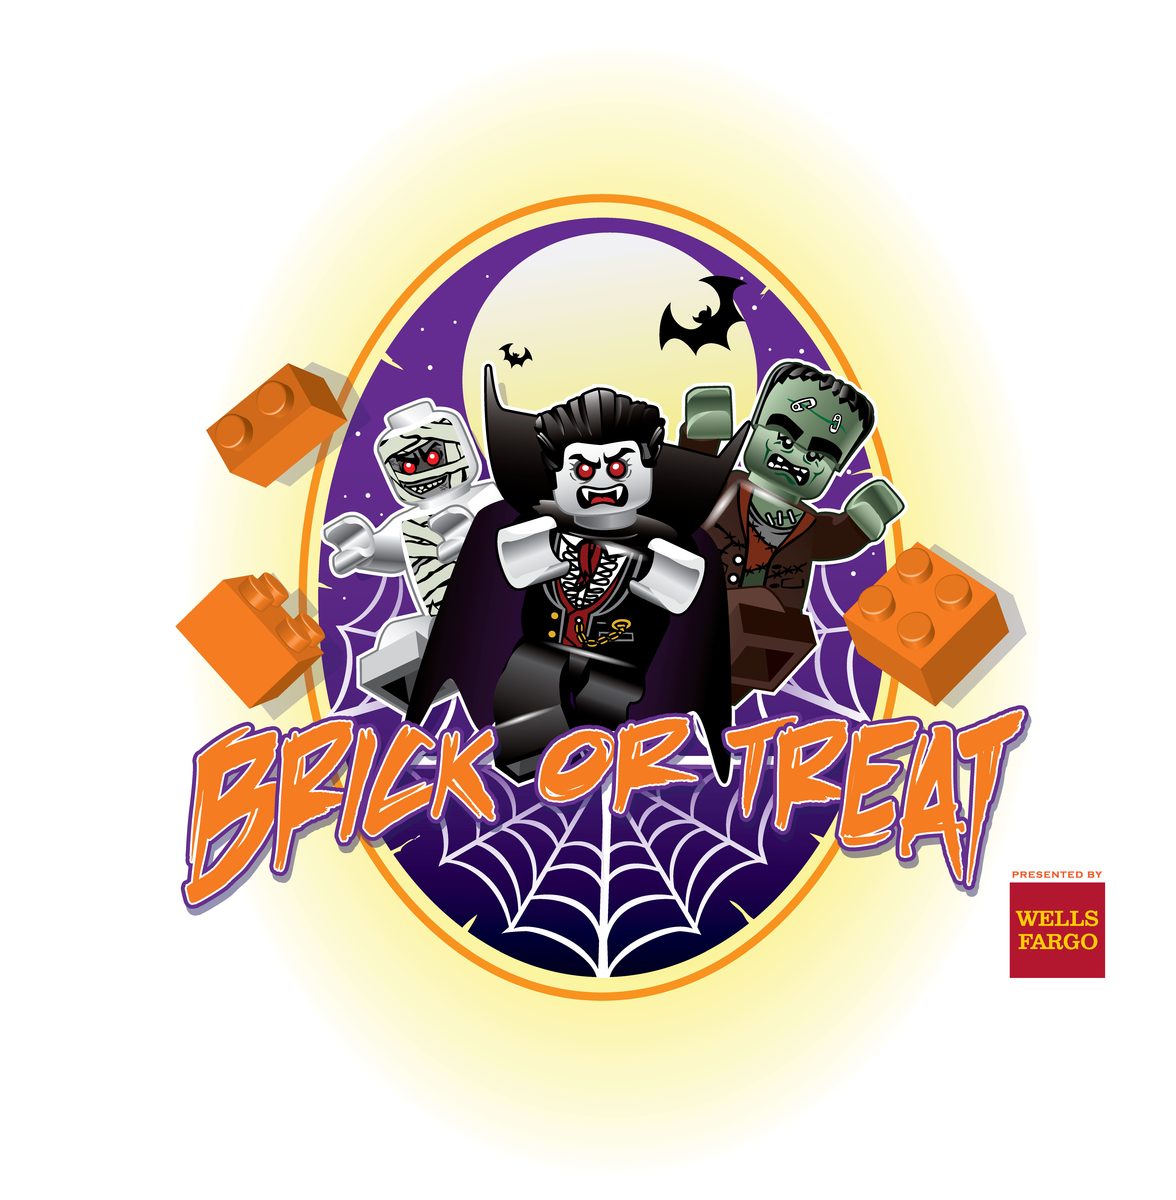 LEGOLAND Florida Brick or Treat 2014